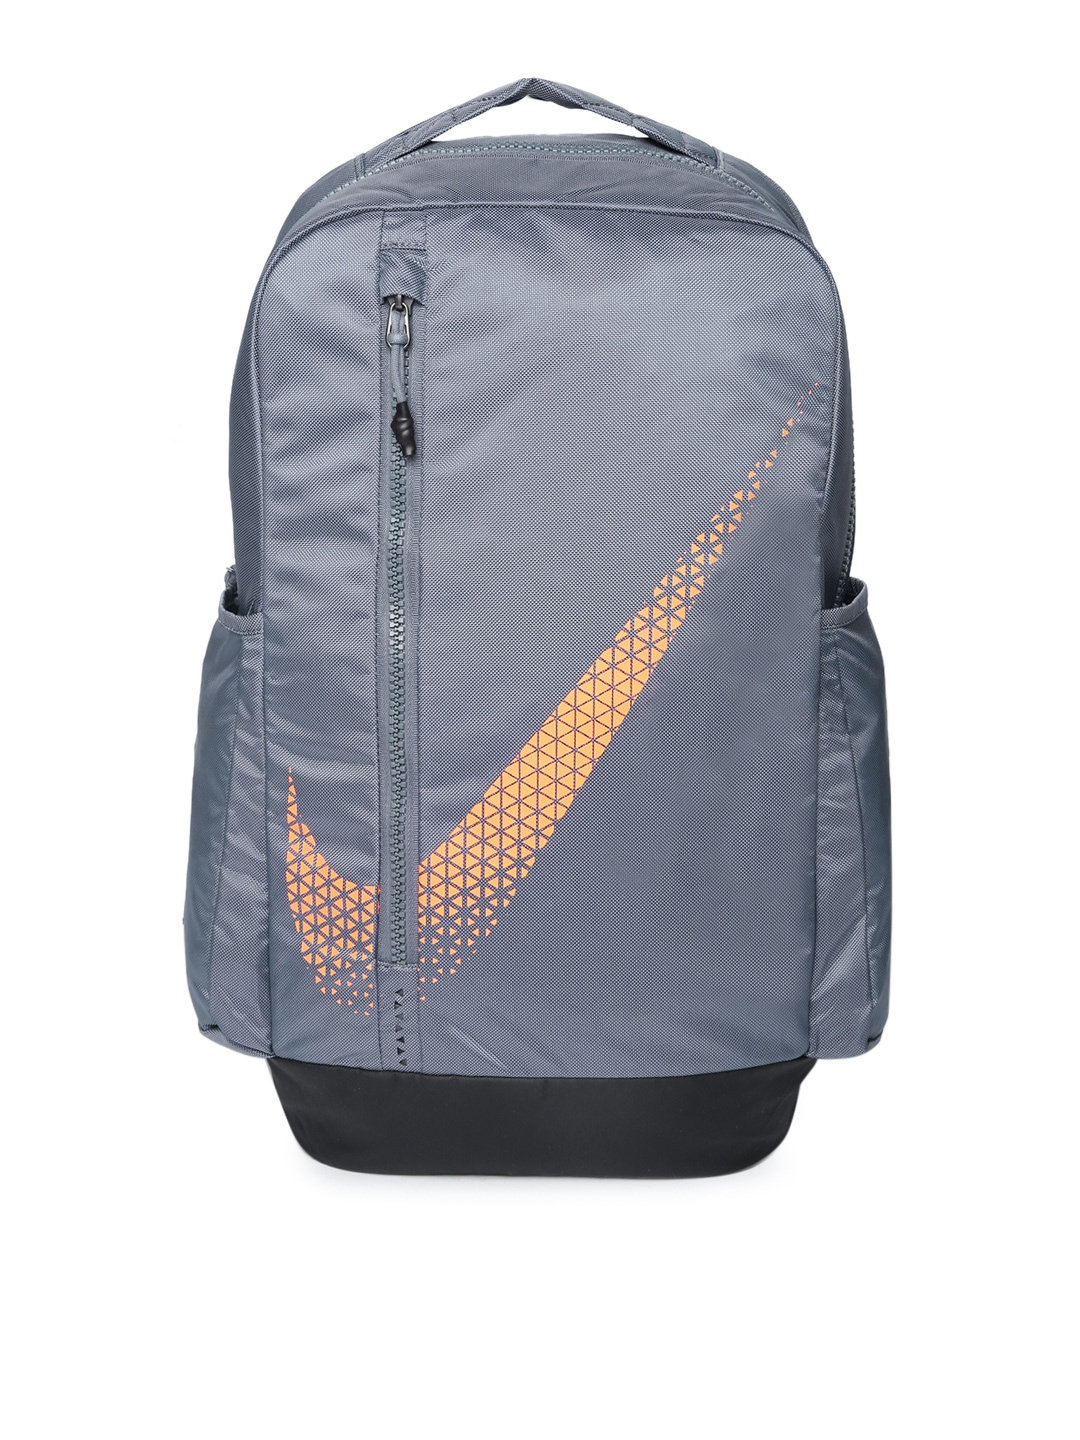 b6a4ae1d04df Backpacks - Buy Backpack Online for Men